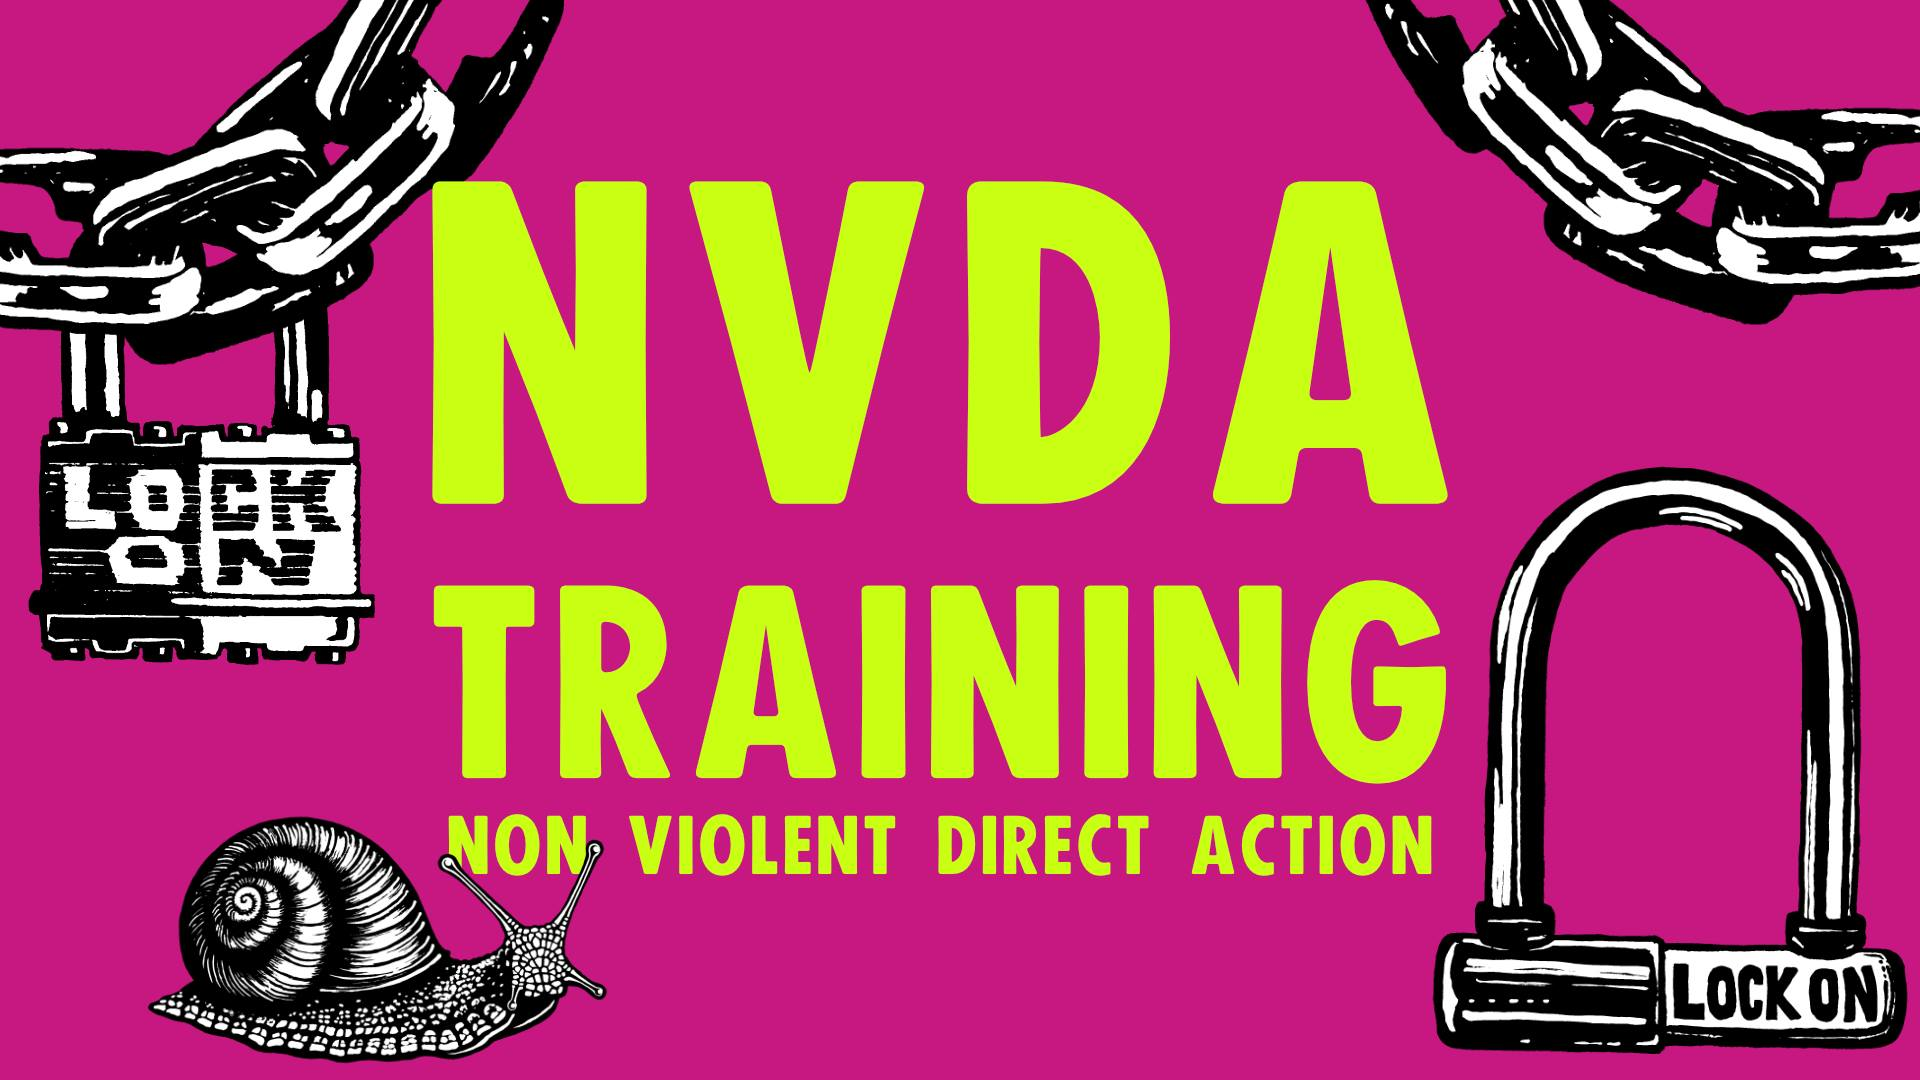 NVDA training with purple background locks and chains